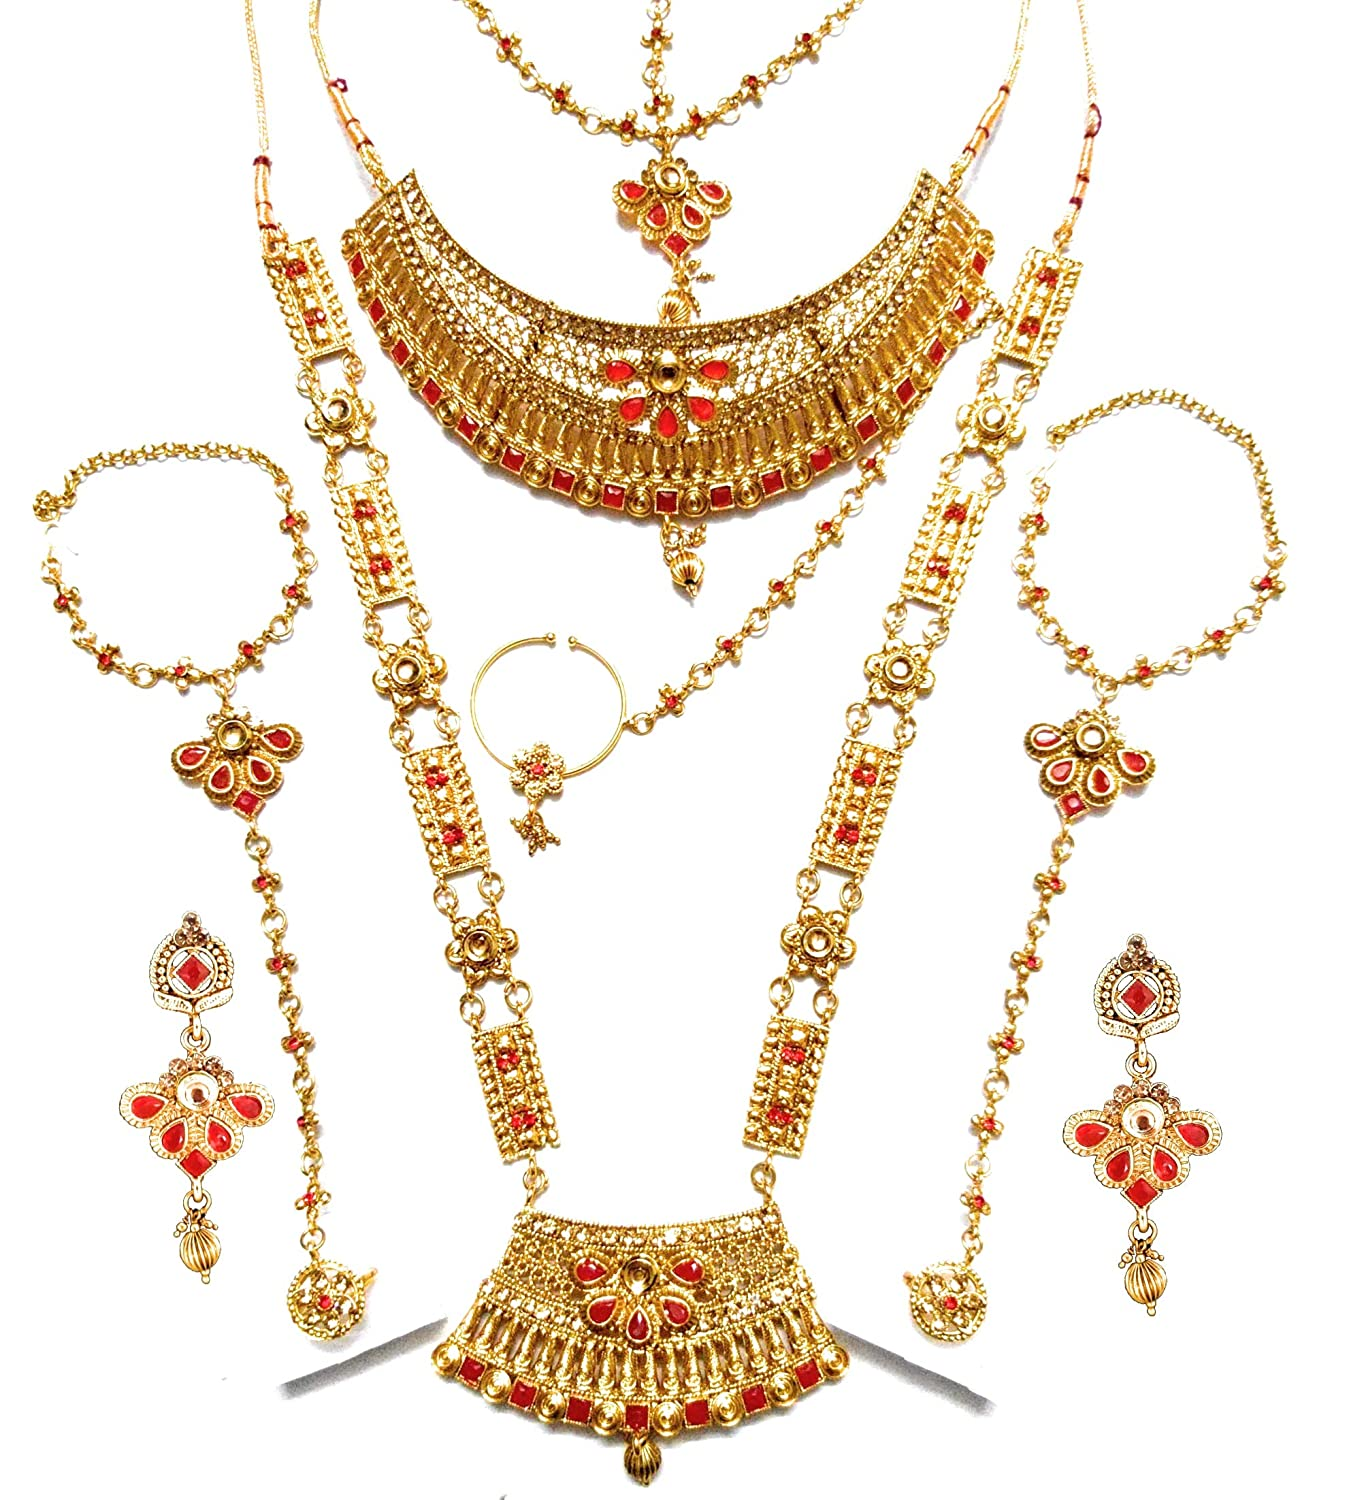 d289700f5df8 Buy NMJ 8 Piece Red Gold-Plated Bridal Jewellery Set for Women Online at  Low Prices in India